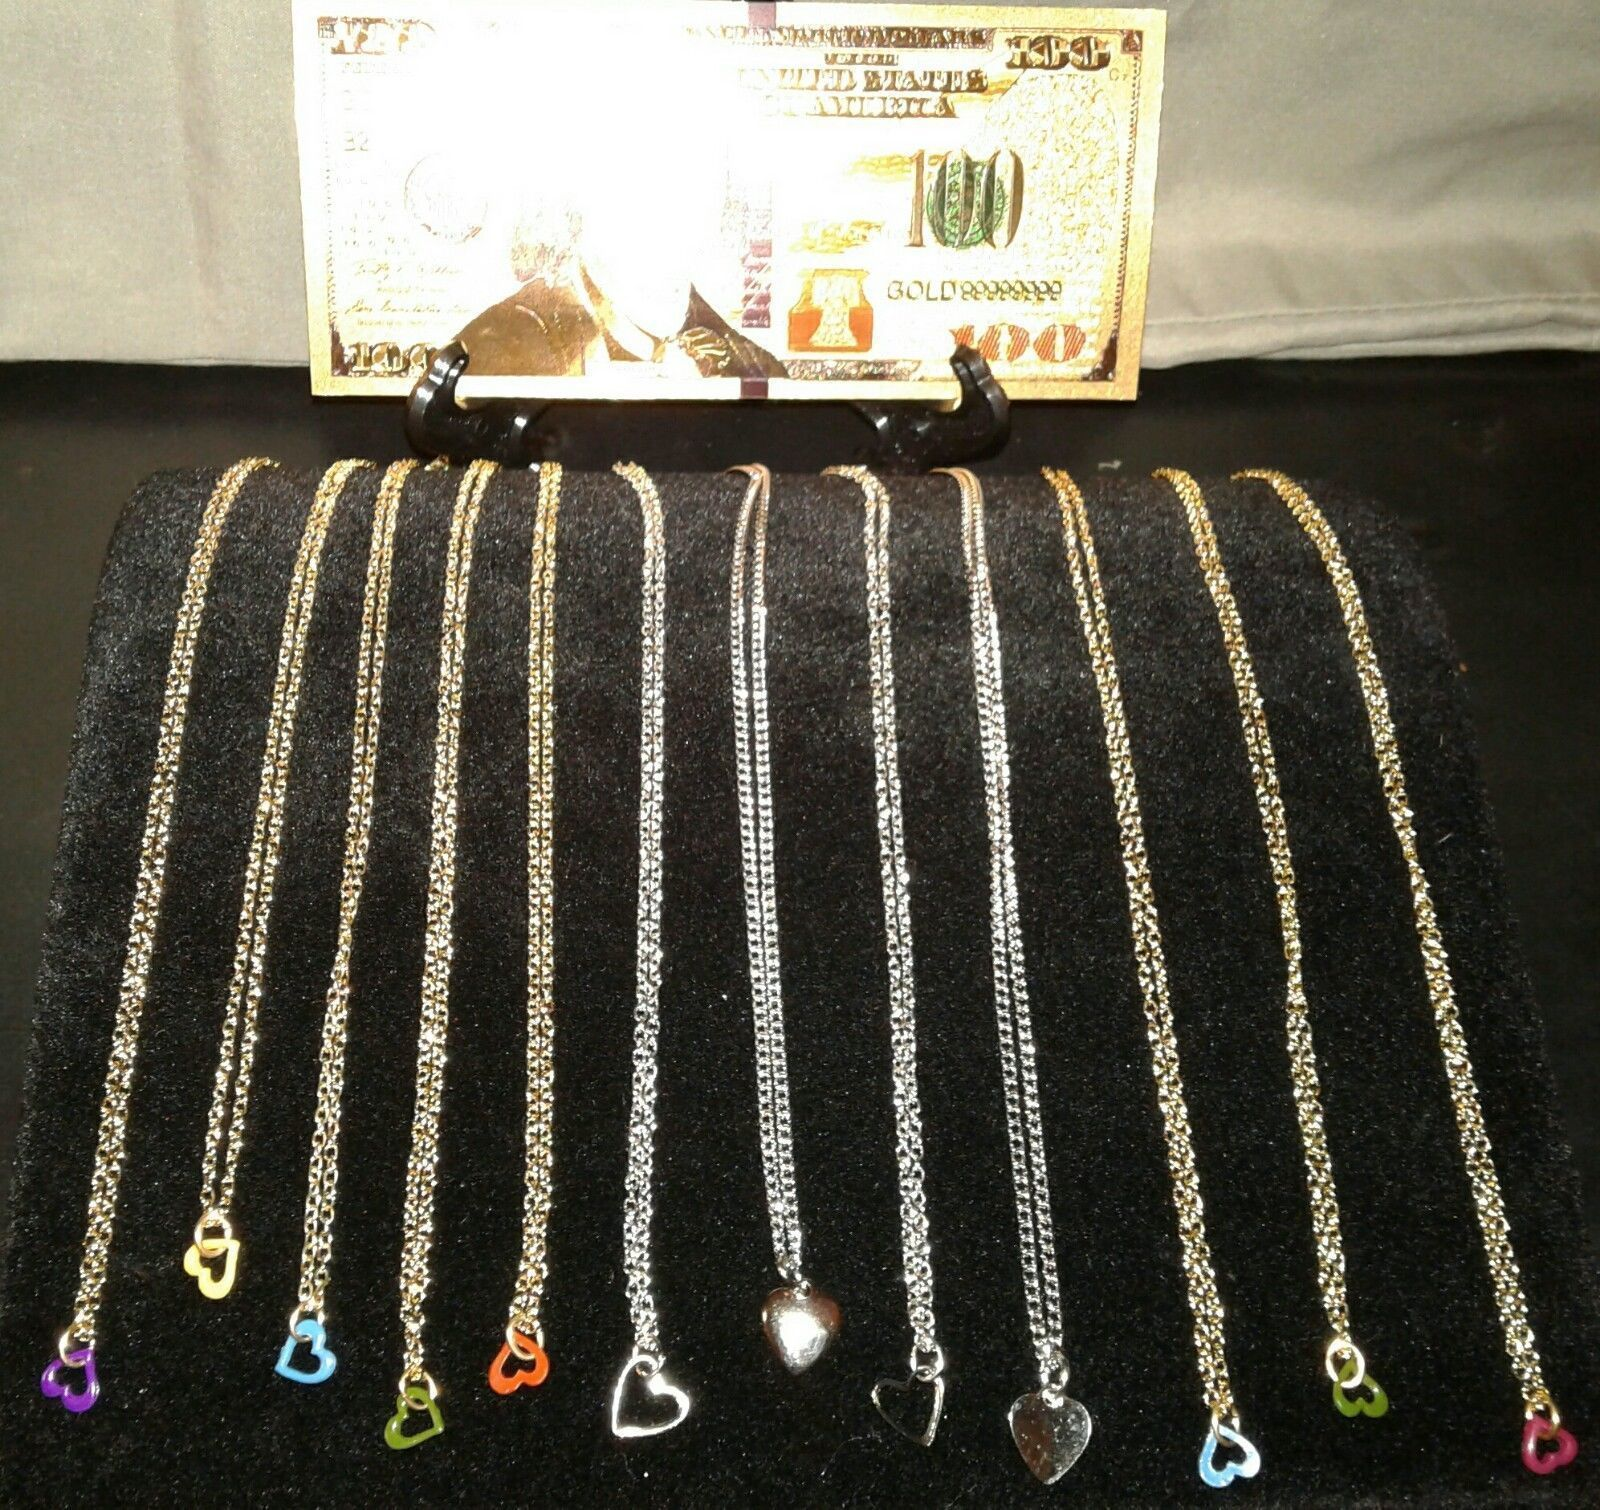 Primary image for MAKE☆OFFER☆GOLD☆ $100 Rep.* Banknote +12 GOLD & SILVER BEAUTIFUL HEART Necklaces